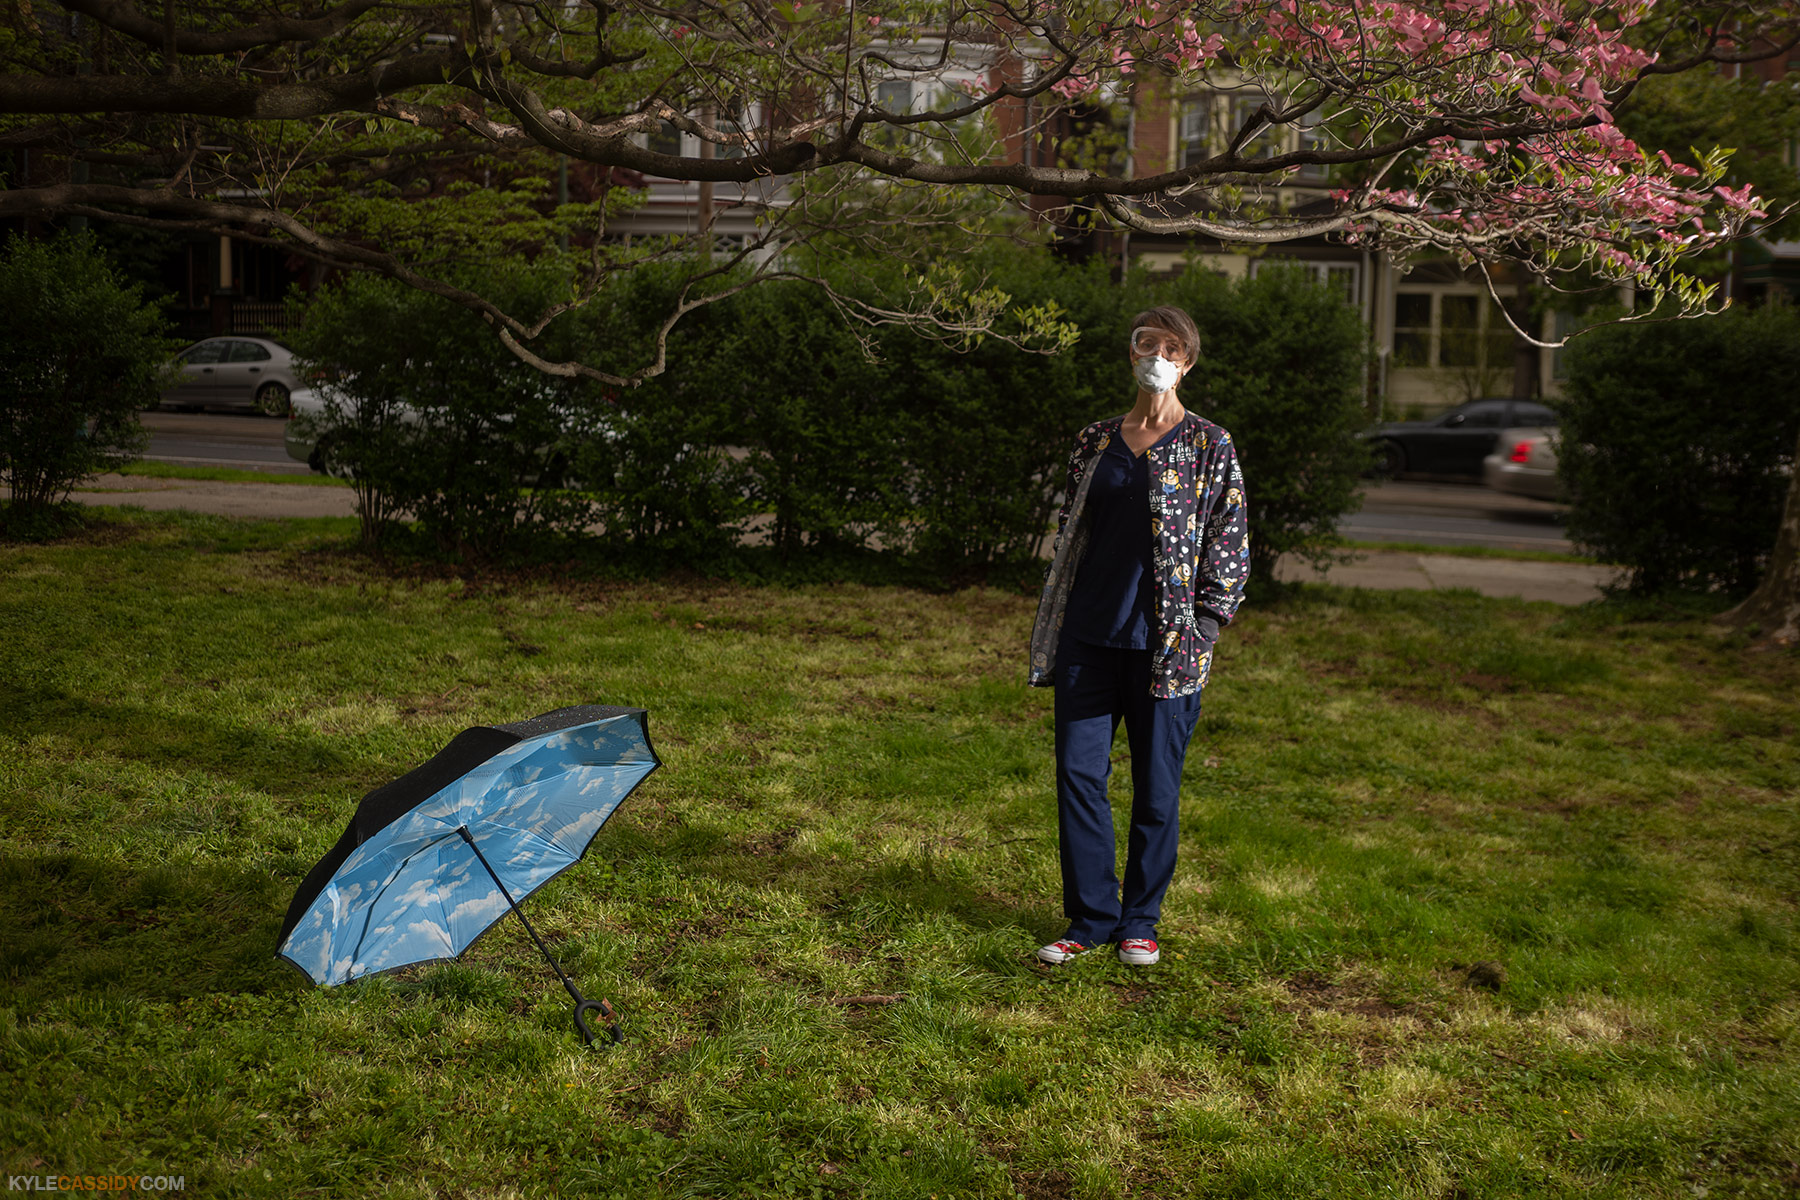 Karen wearing hospital scrubs standing in a park with an open umbrella on the ground next to her. She is wearing a surgical mask.